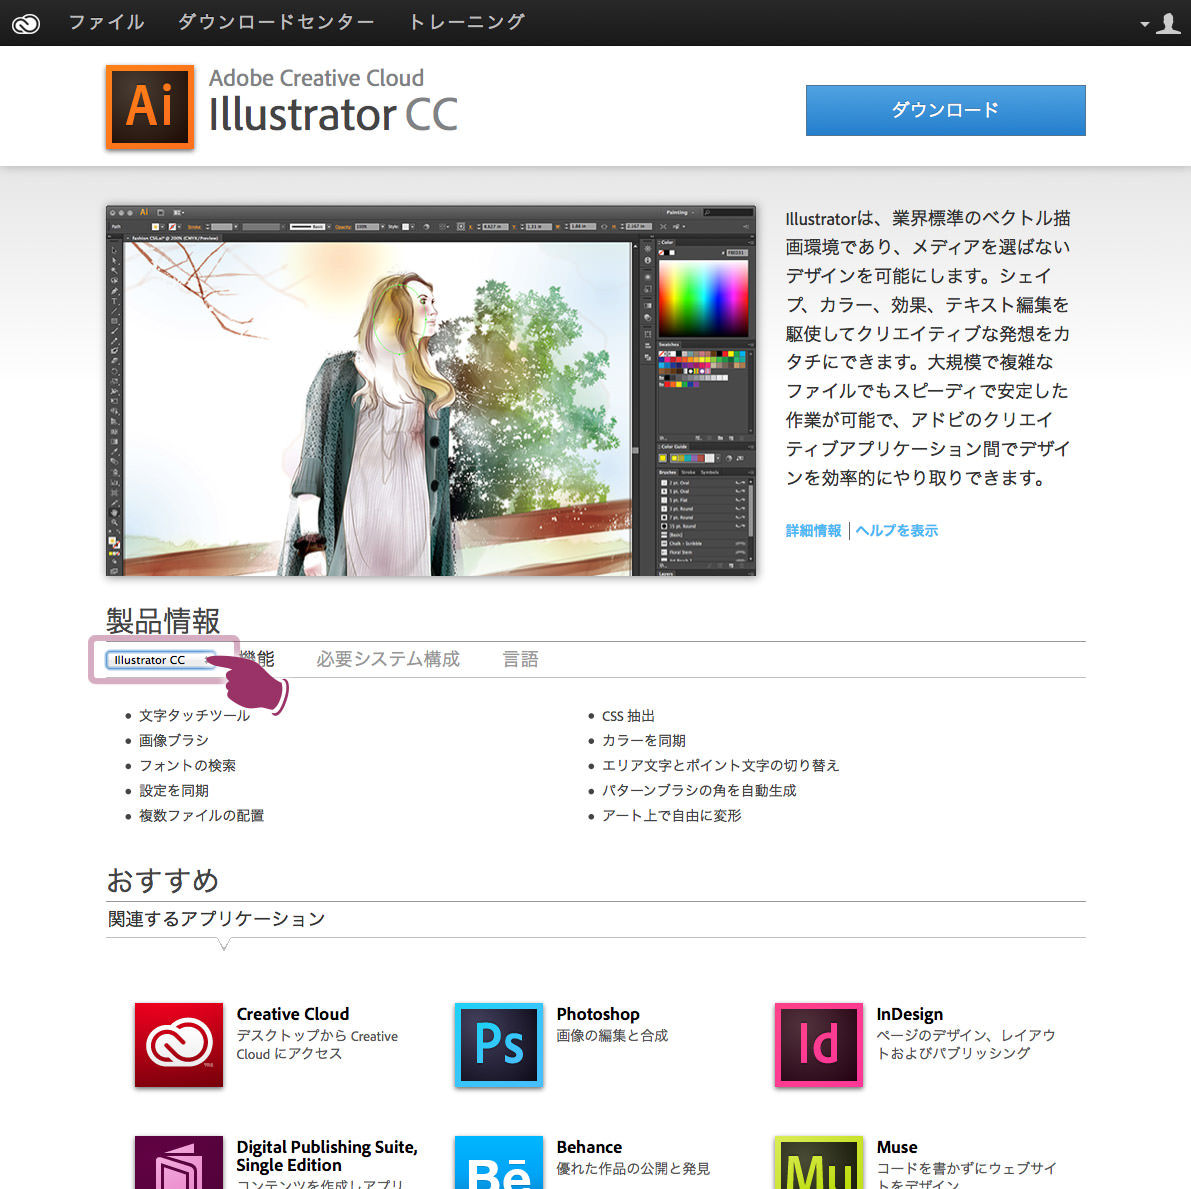 CS6-download-center-3.jpg